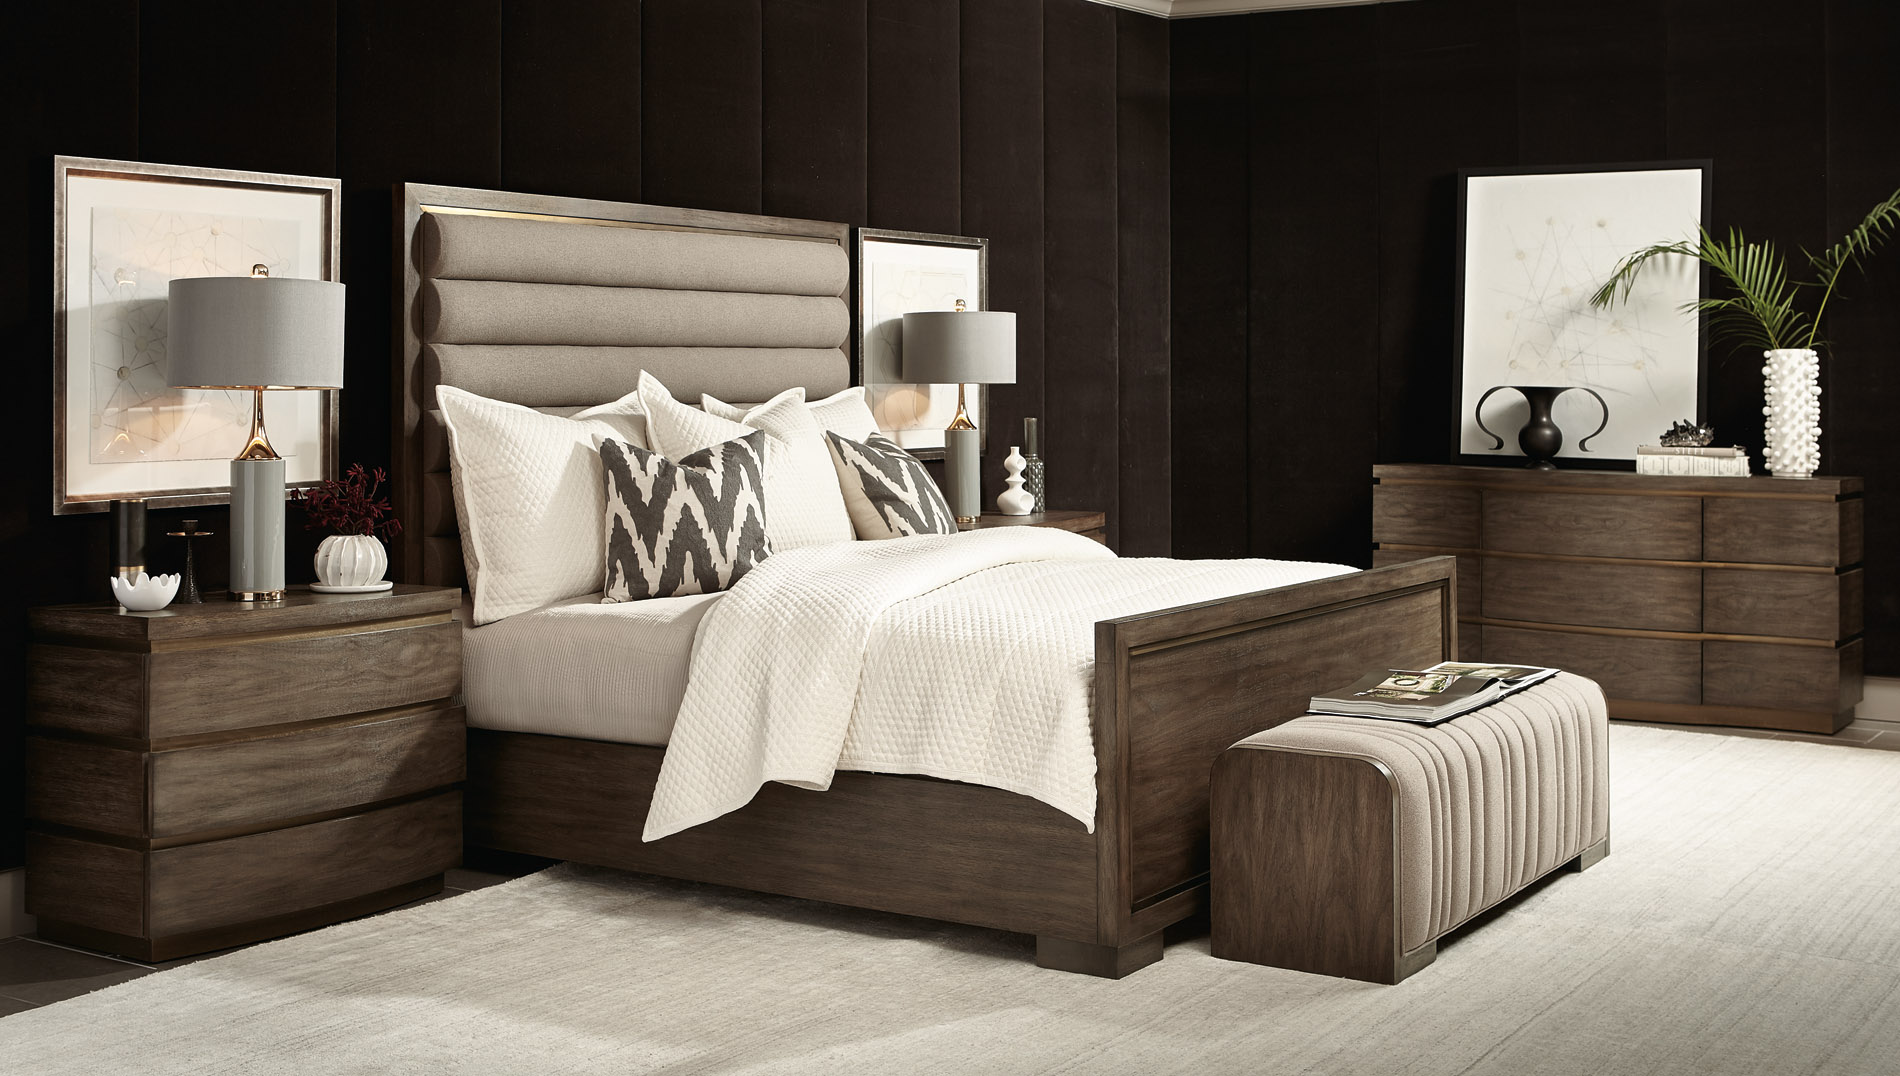 Bernhardt Profile Collection – Shop now at LuxDeco.com